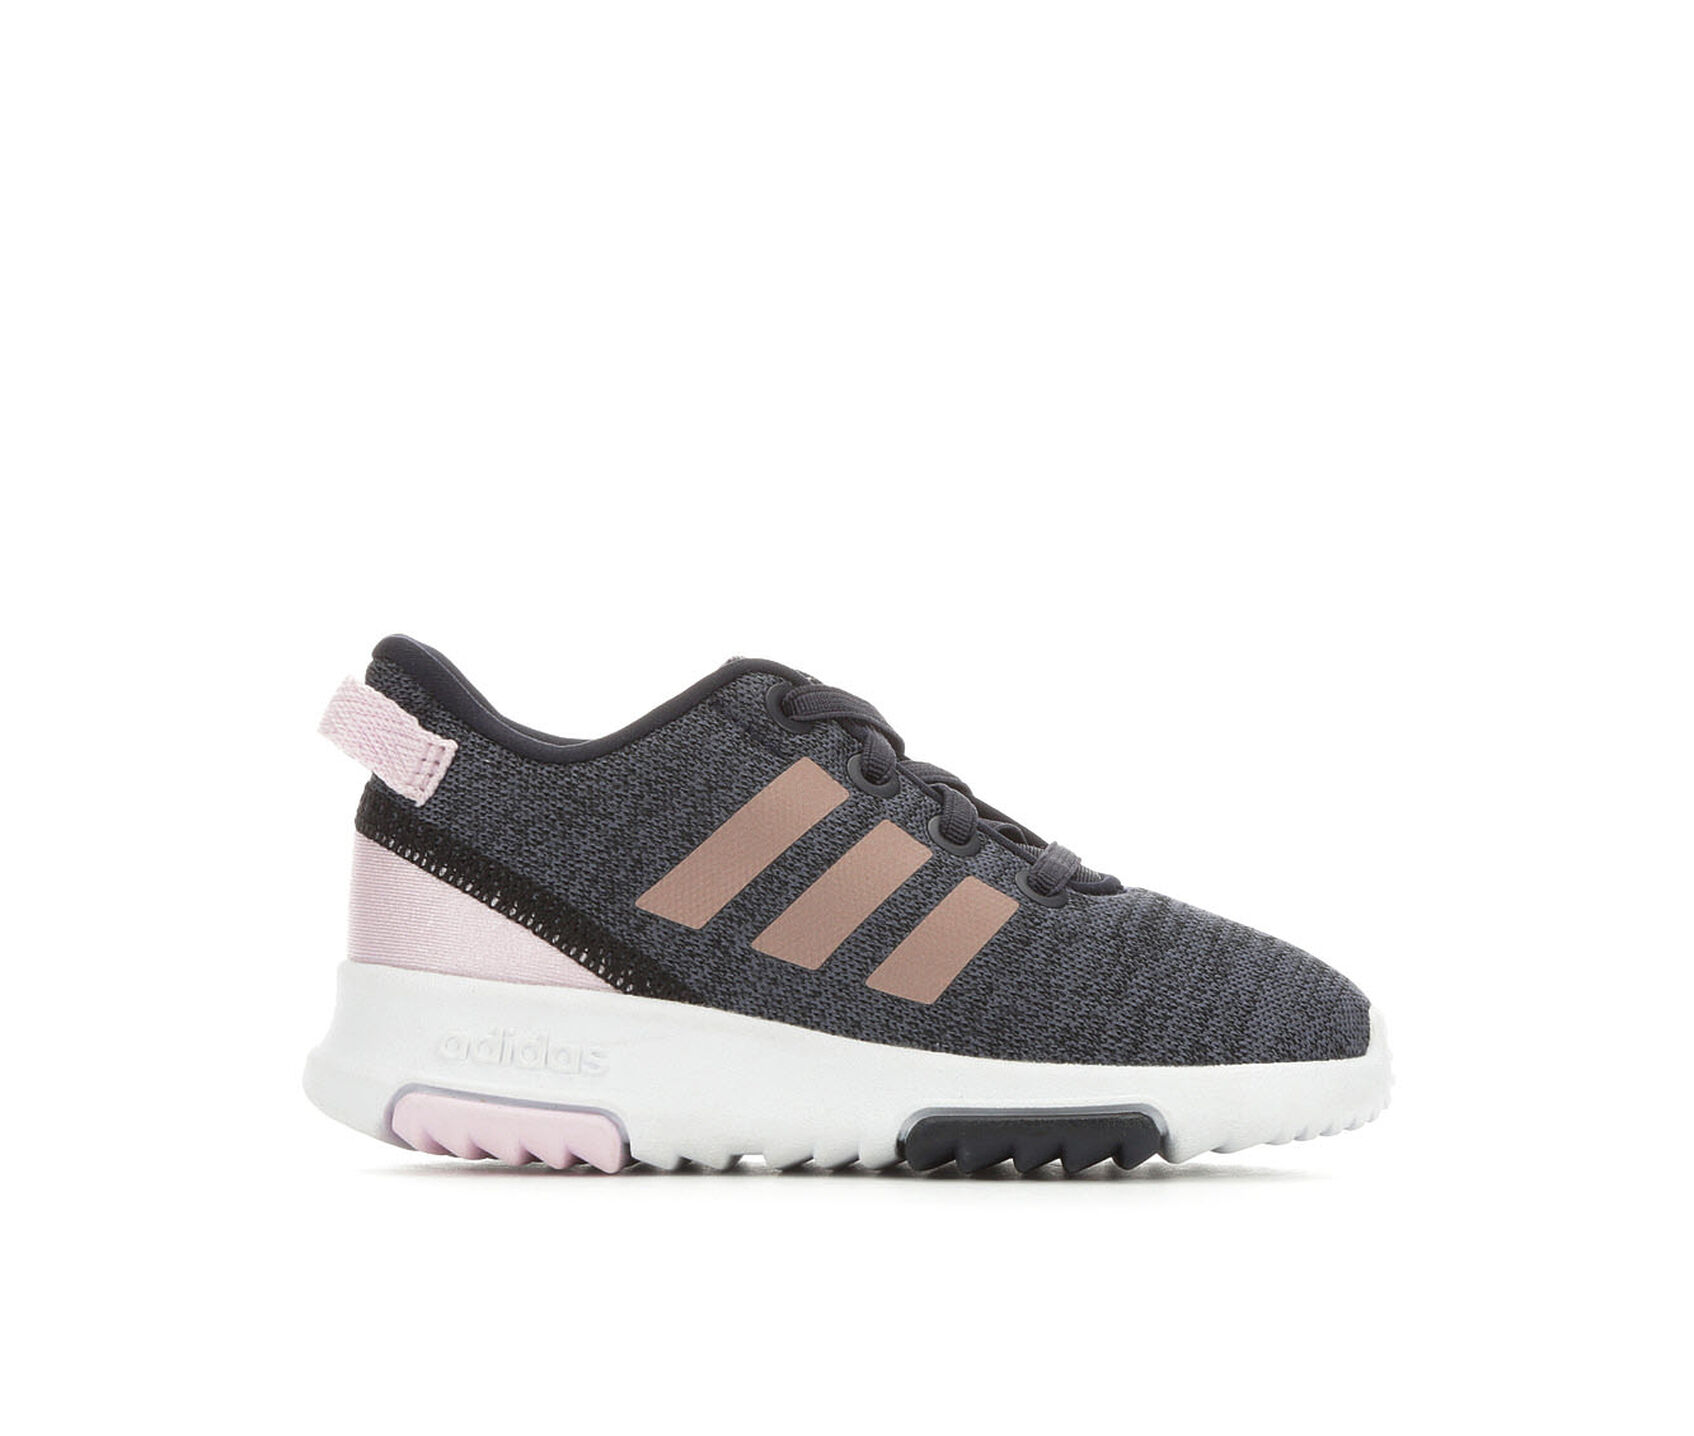 30a5bbf79a4b Girls  Adidas Infant   Toddler Racer TR Athletic Shoes